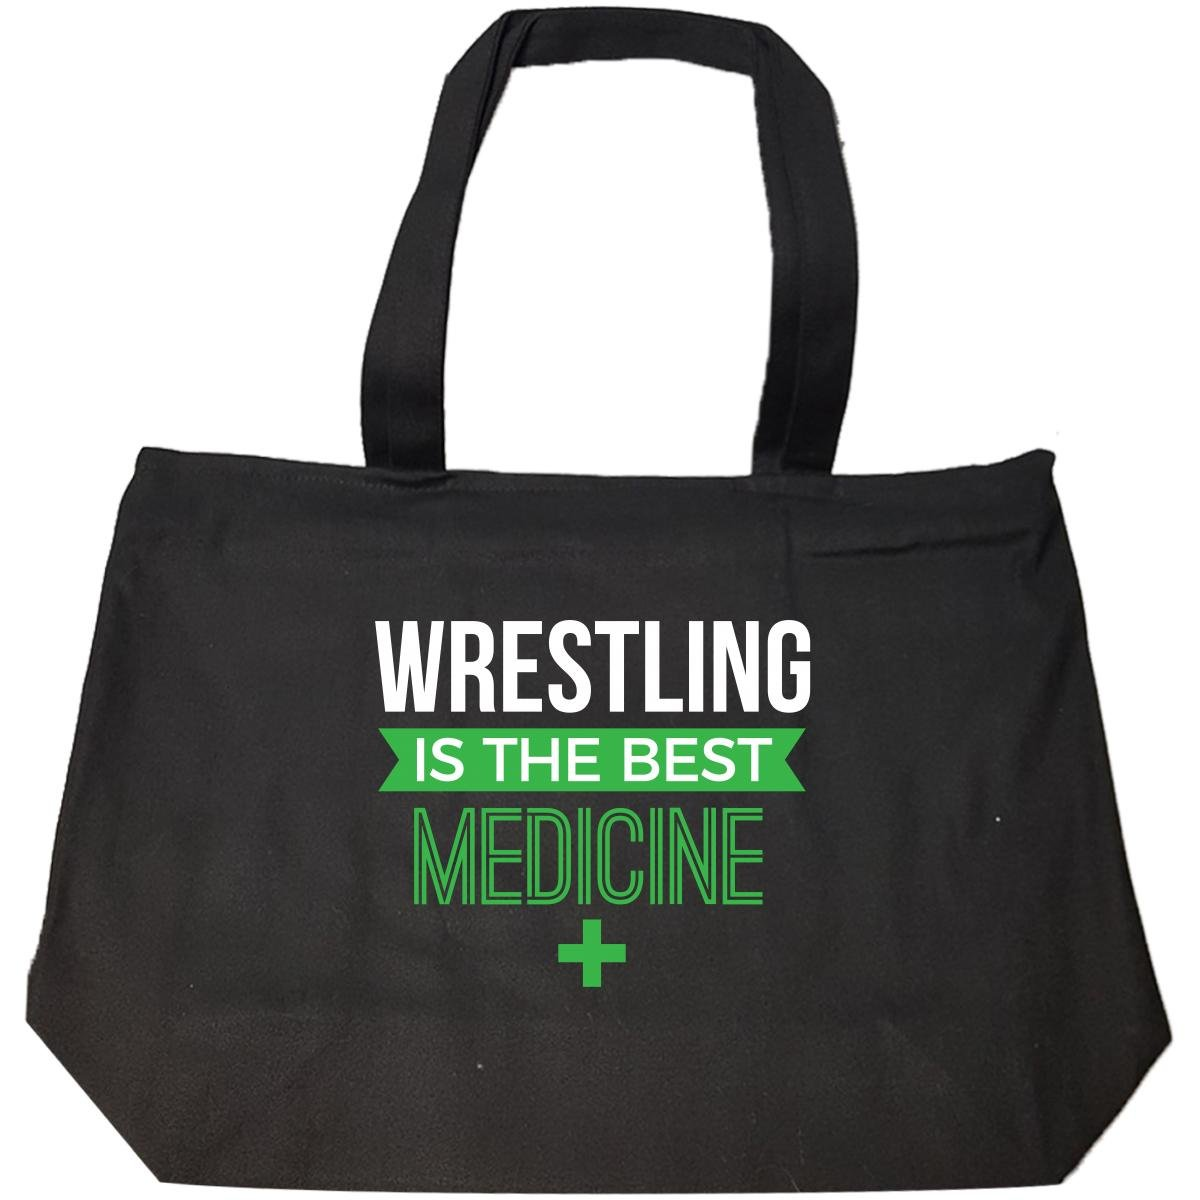 Wrestling Is The Best Medicine Favorite Sport Gift - Tote Bag With Zip by We Add Up